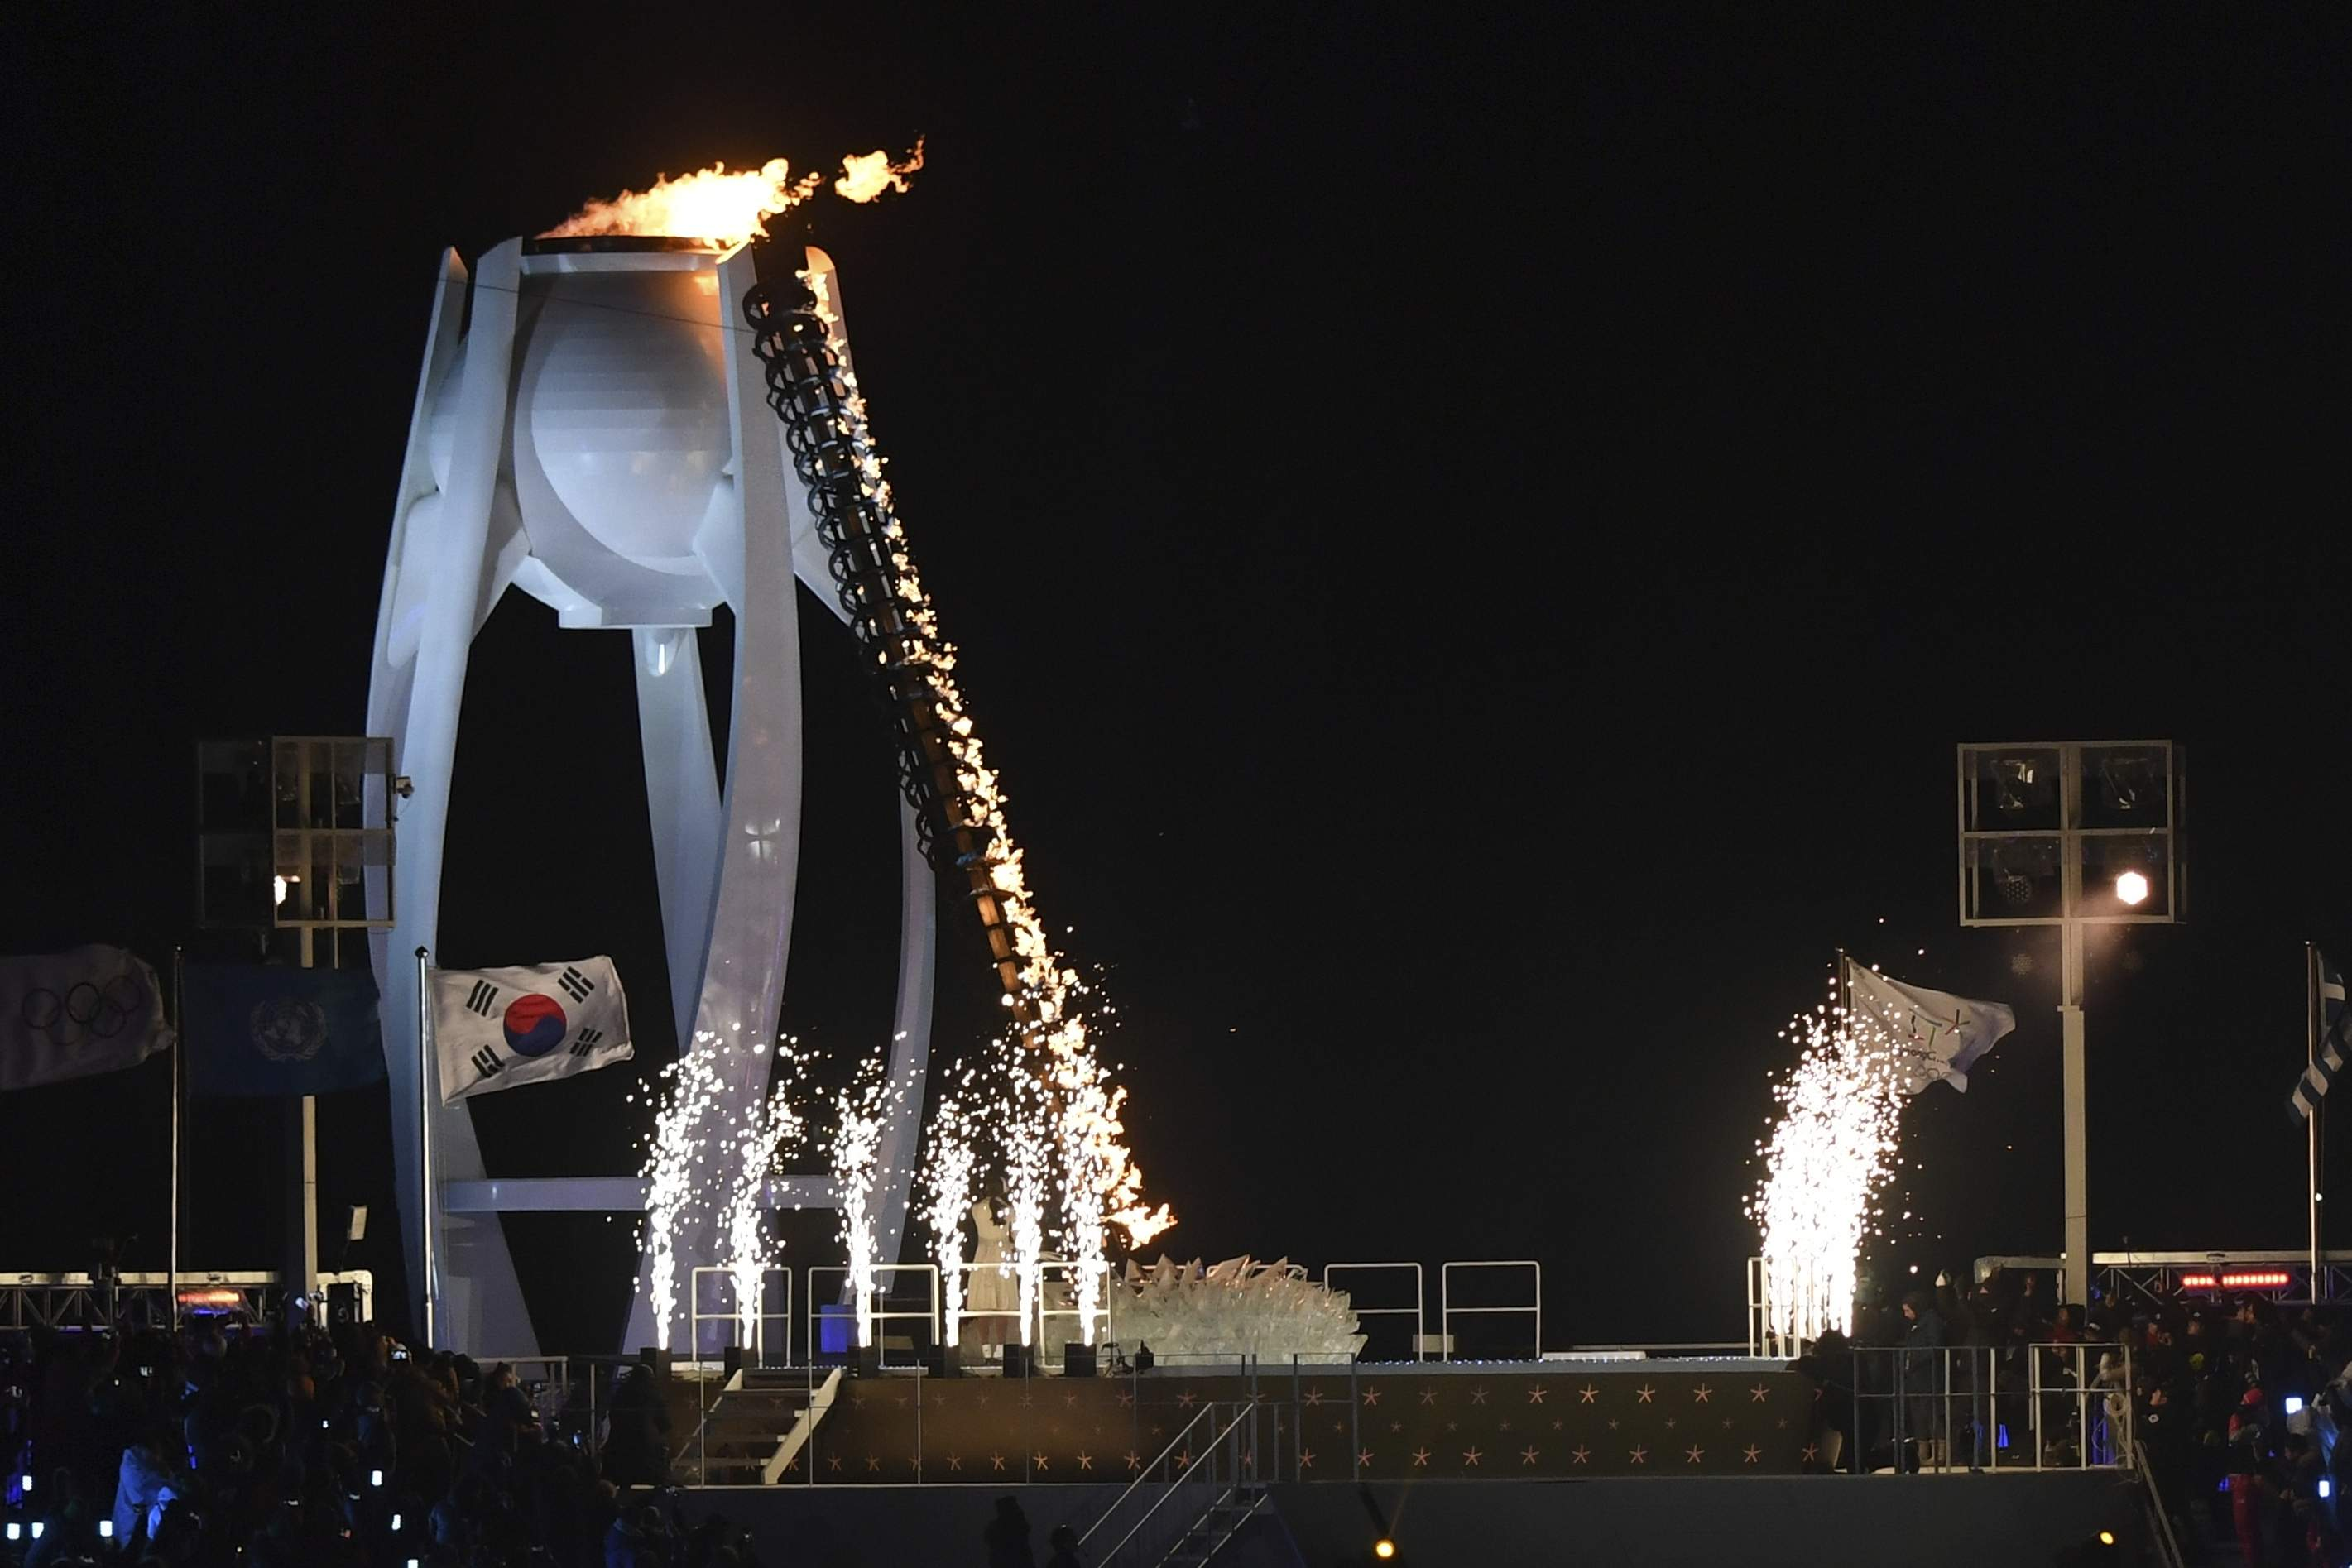 The Olympic flame is lit during the opening ceremony of the 2018 Winter Olympics in Pyeongchang, South Korea, Friday, Feb. 9, 2018. (Christof Stache/Pool Photo via AP)